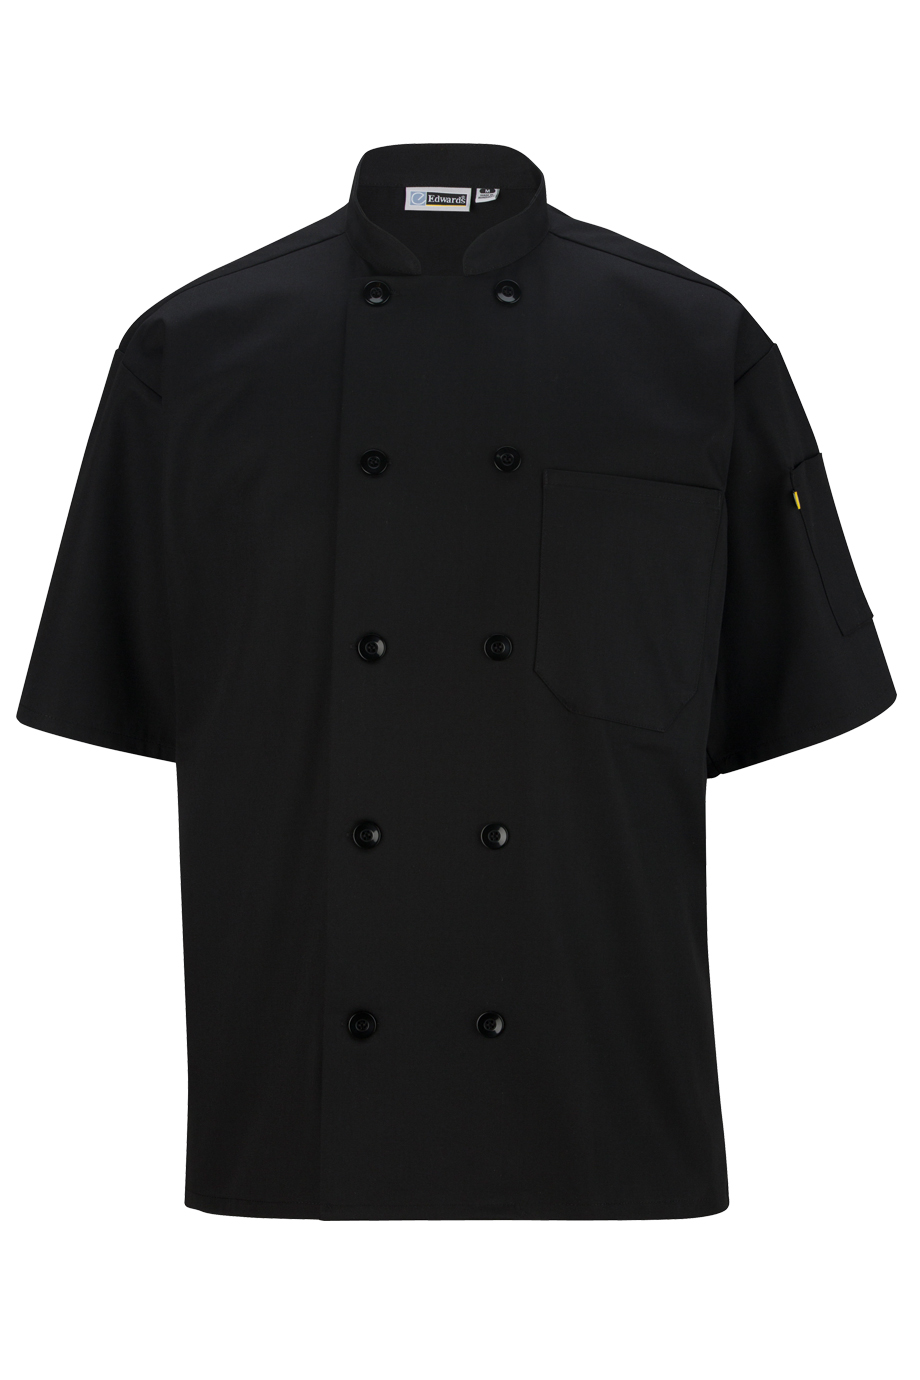 Black Plastic Button Short Sleeve Chef Coat-Edwards